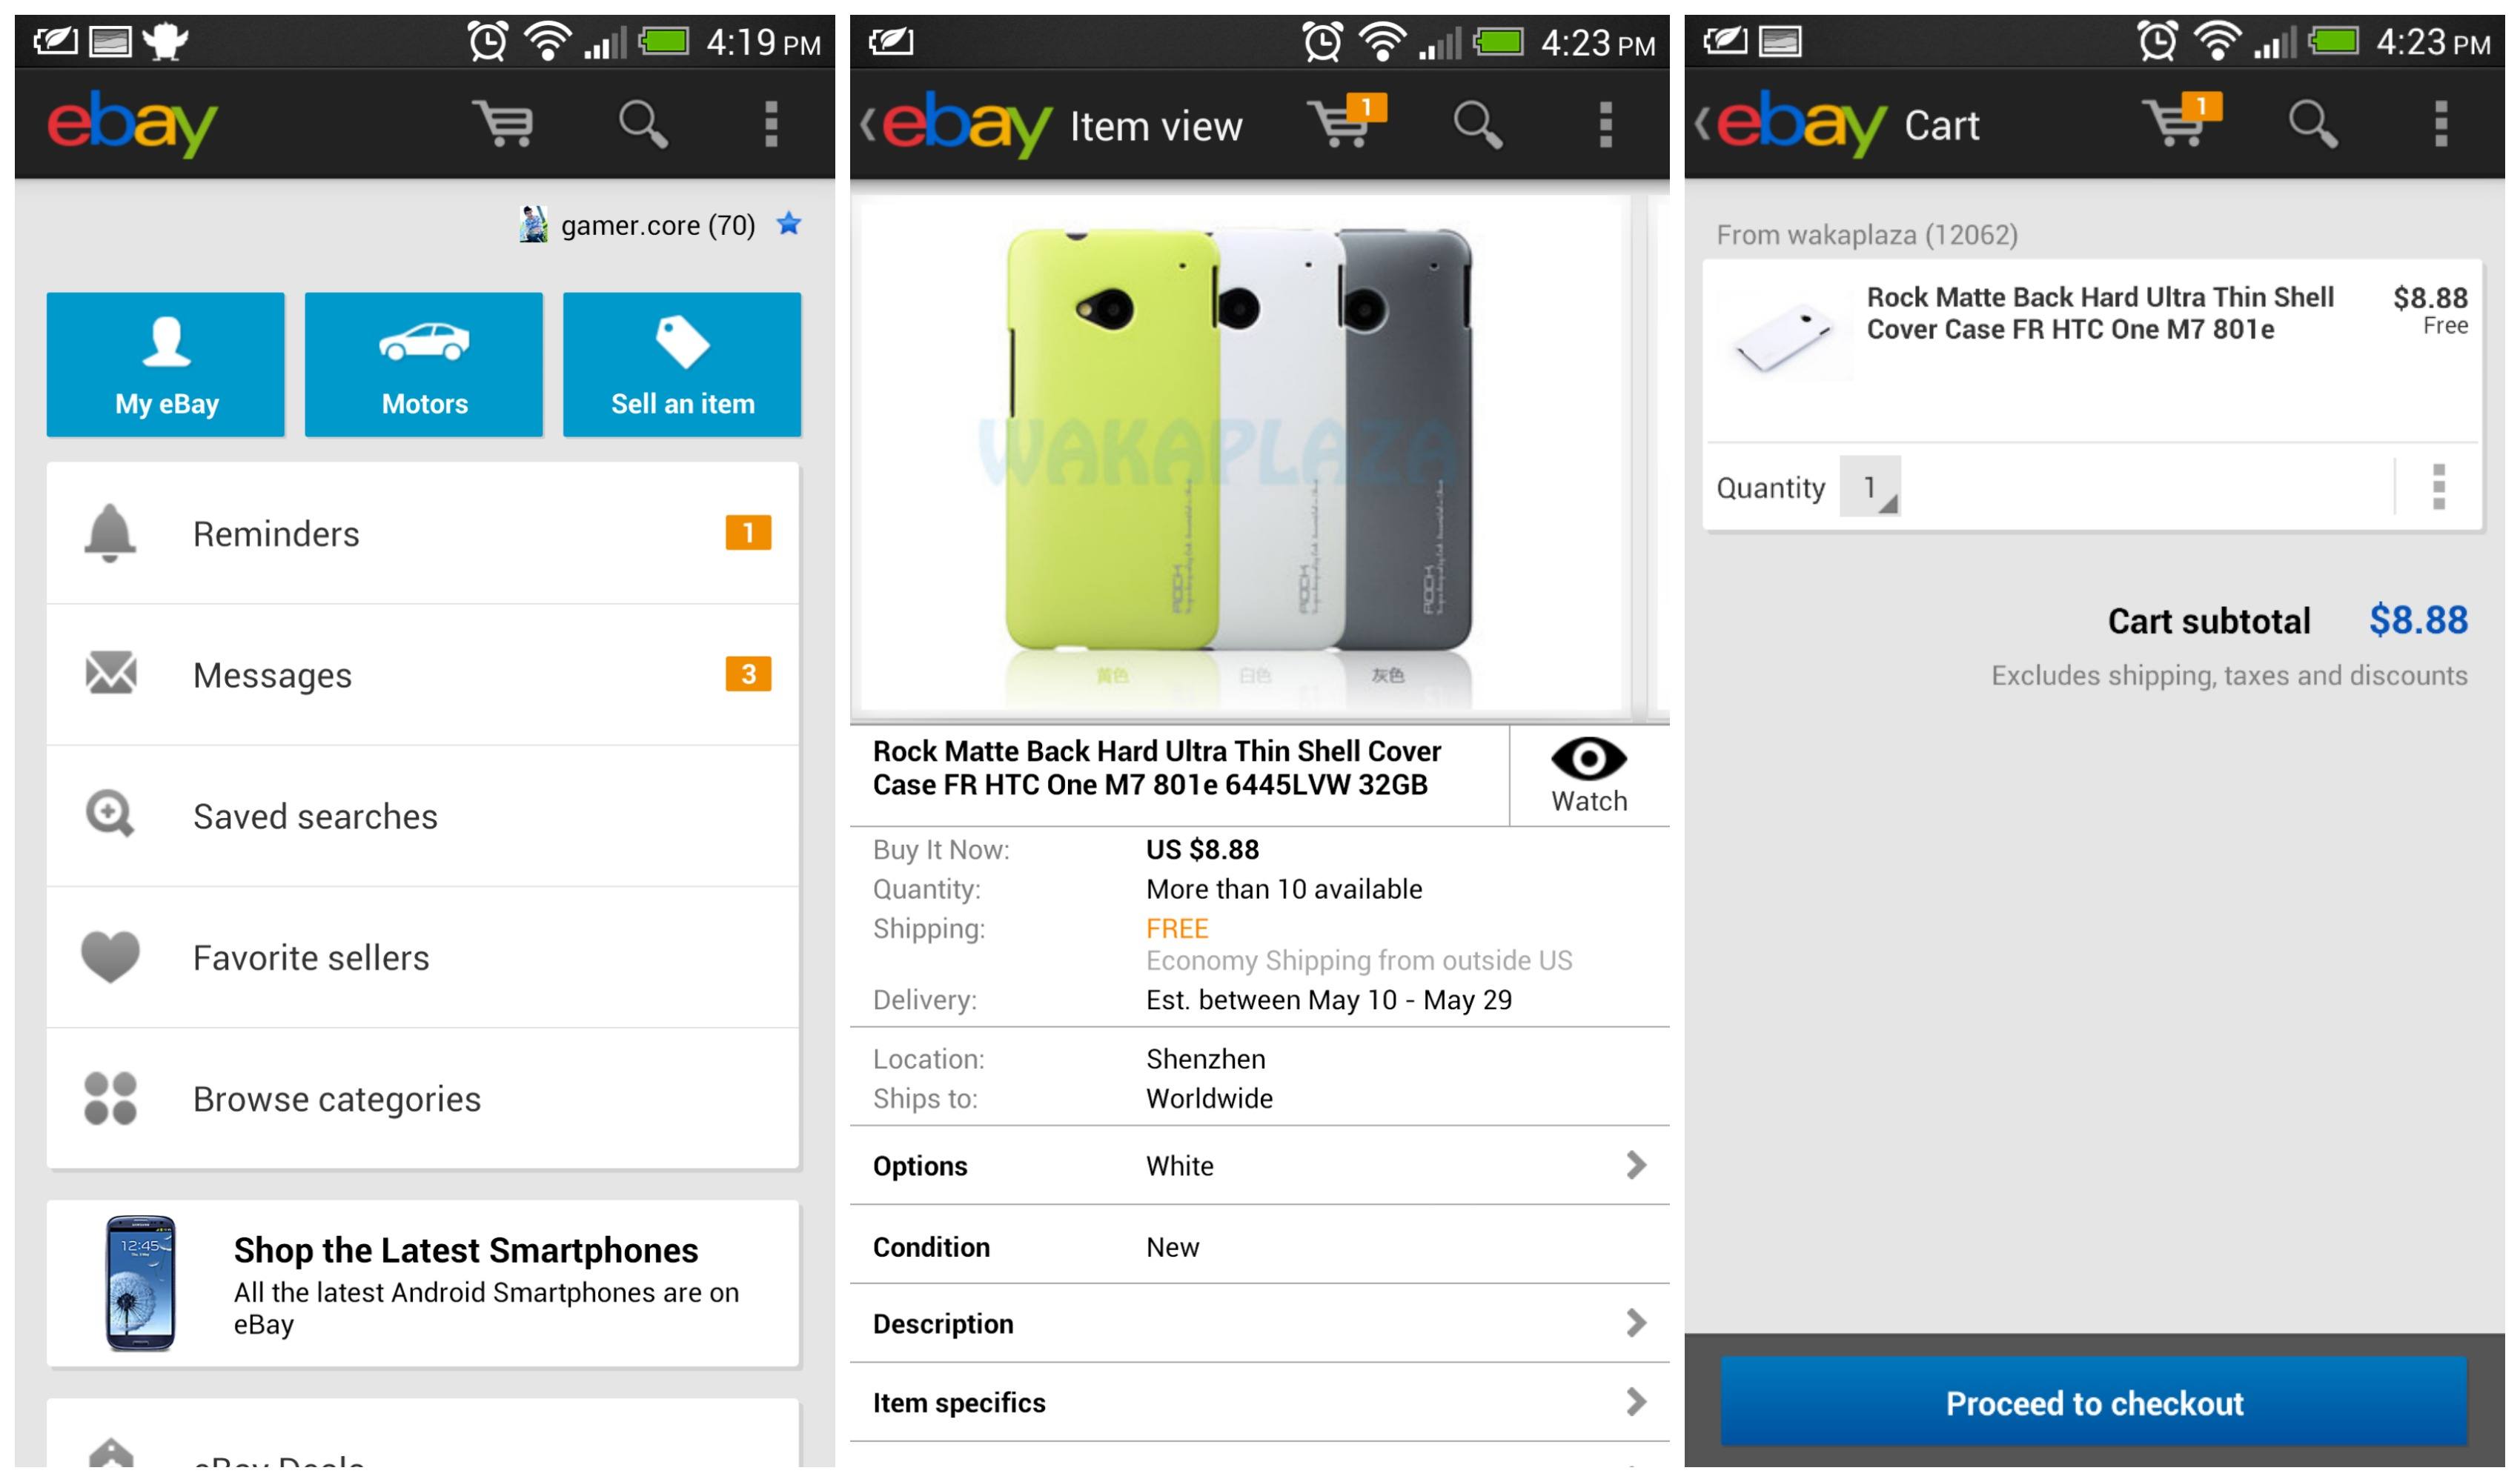 eBay for Android update brings new shopping cart feature and